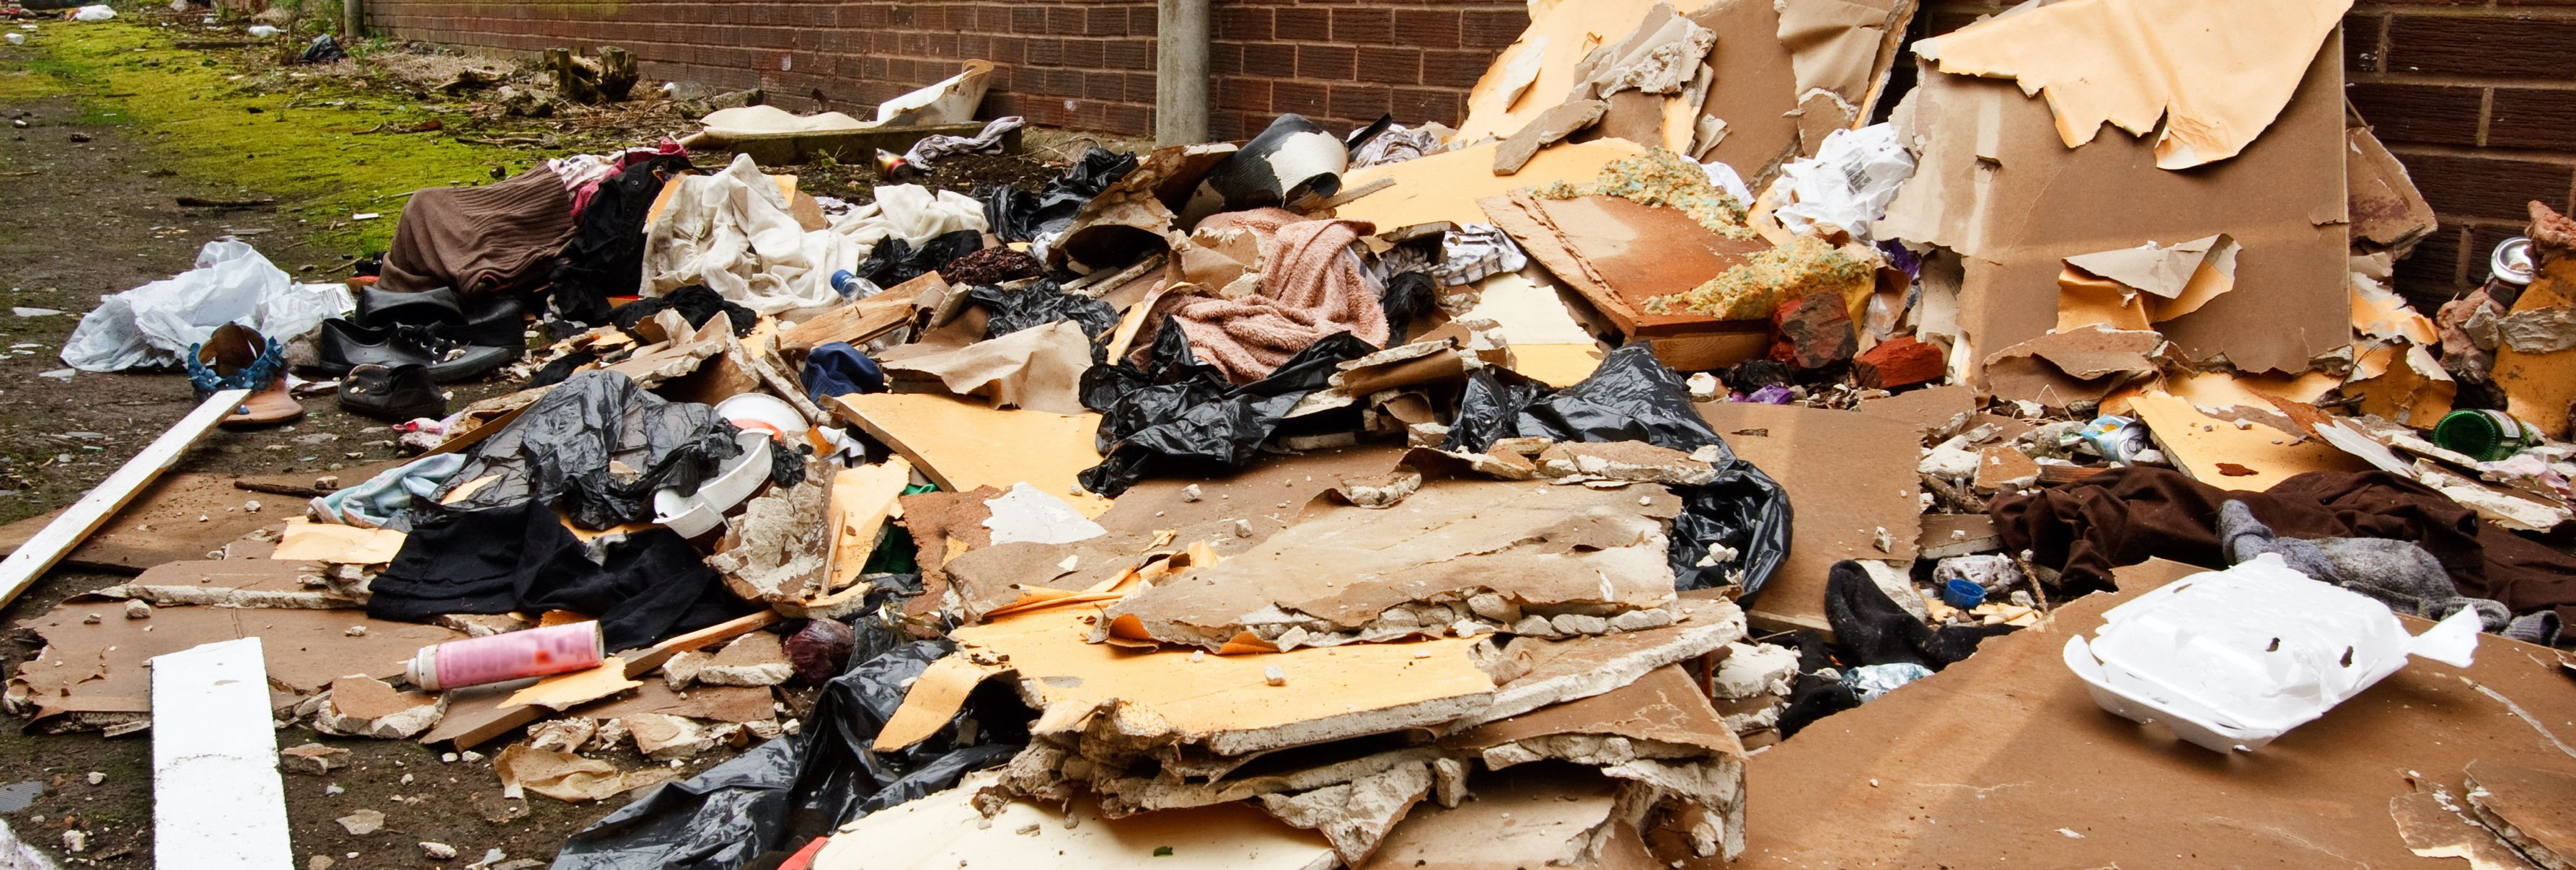 Reporting Fly Tipping? There's An App For That!